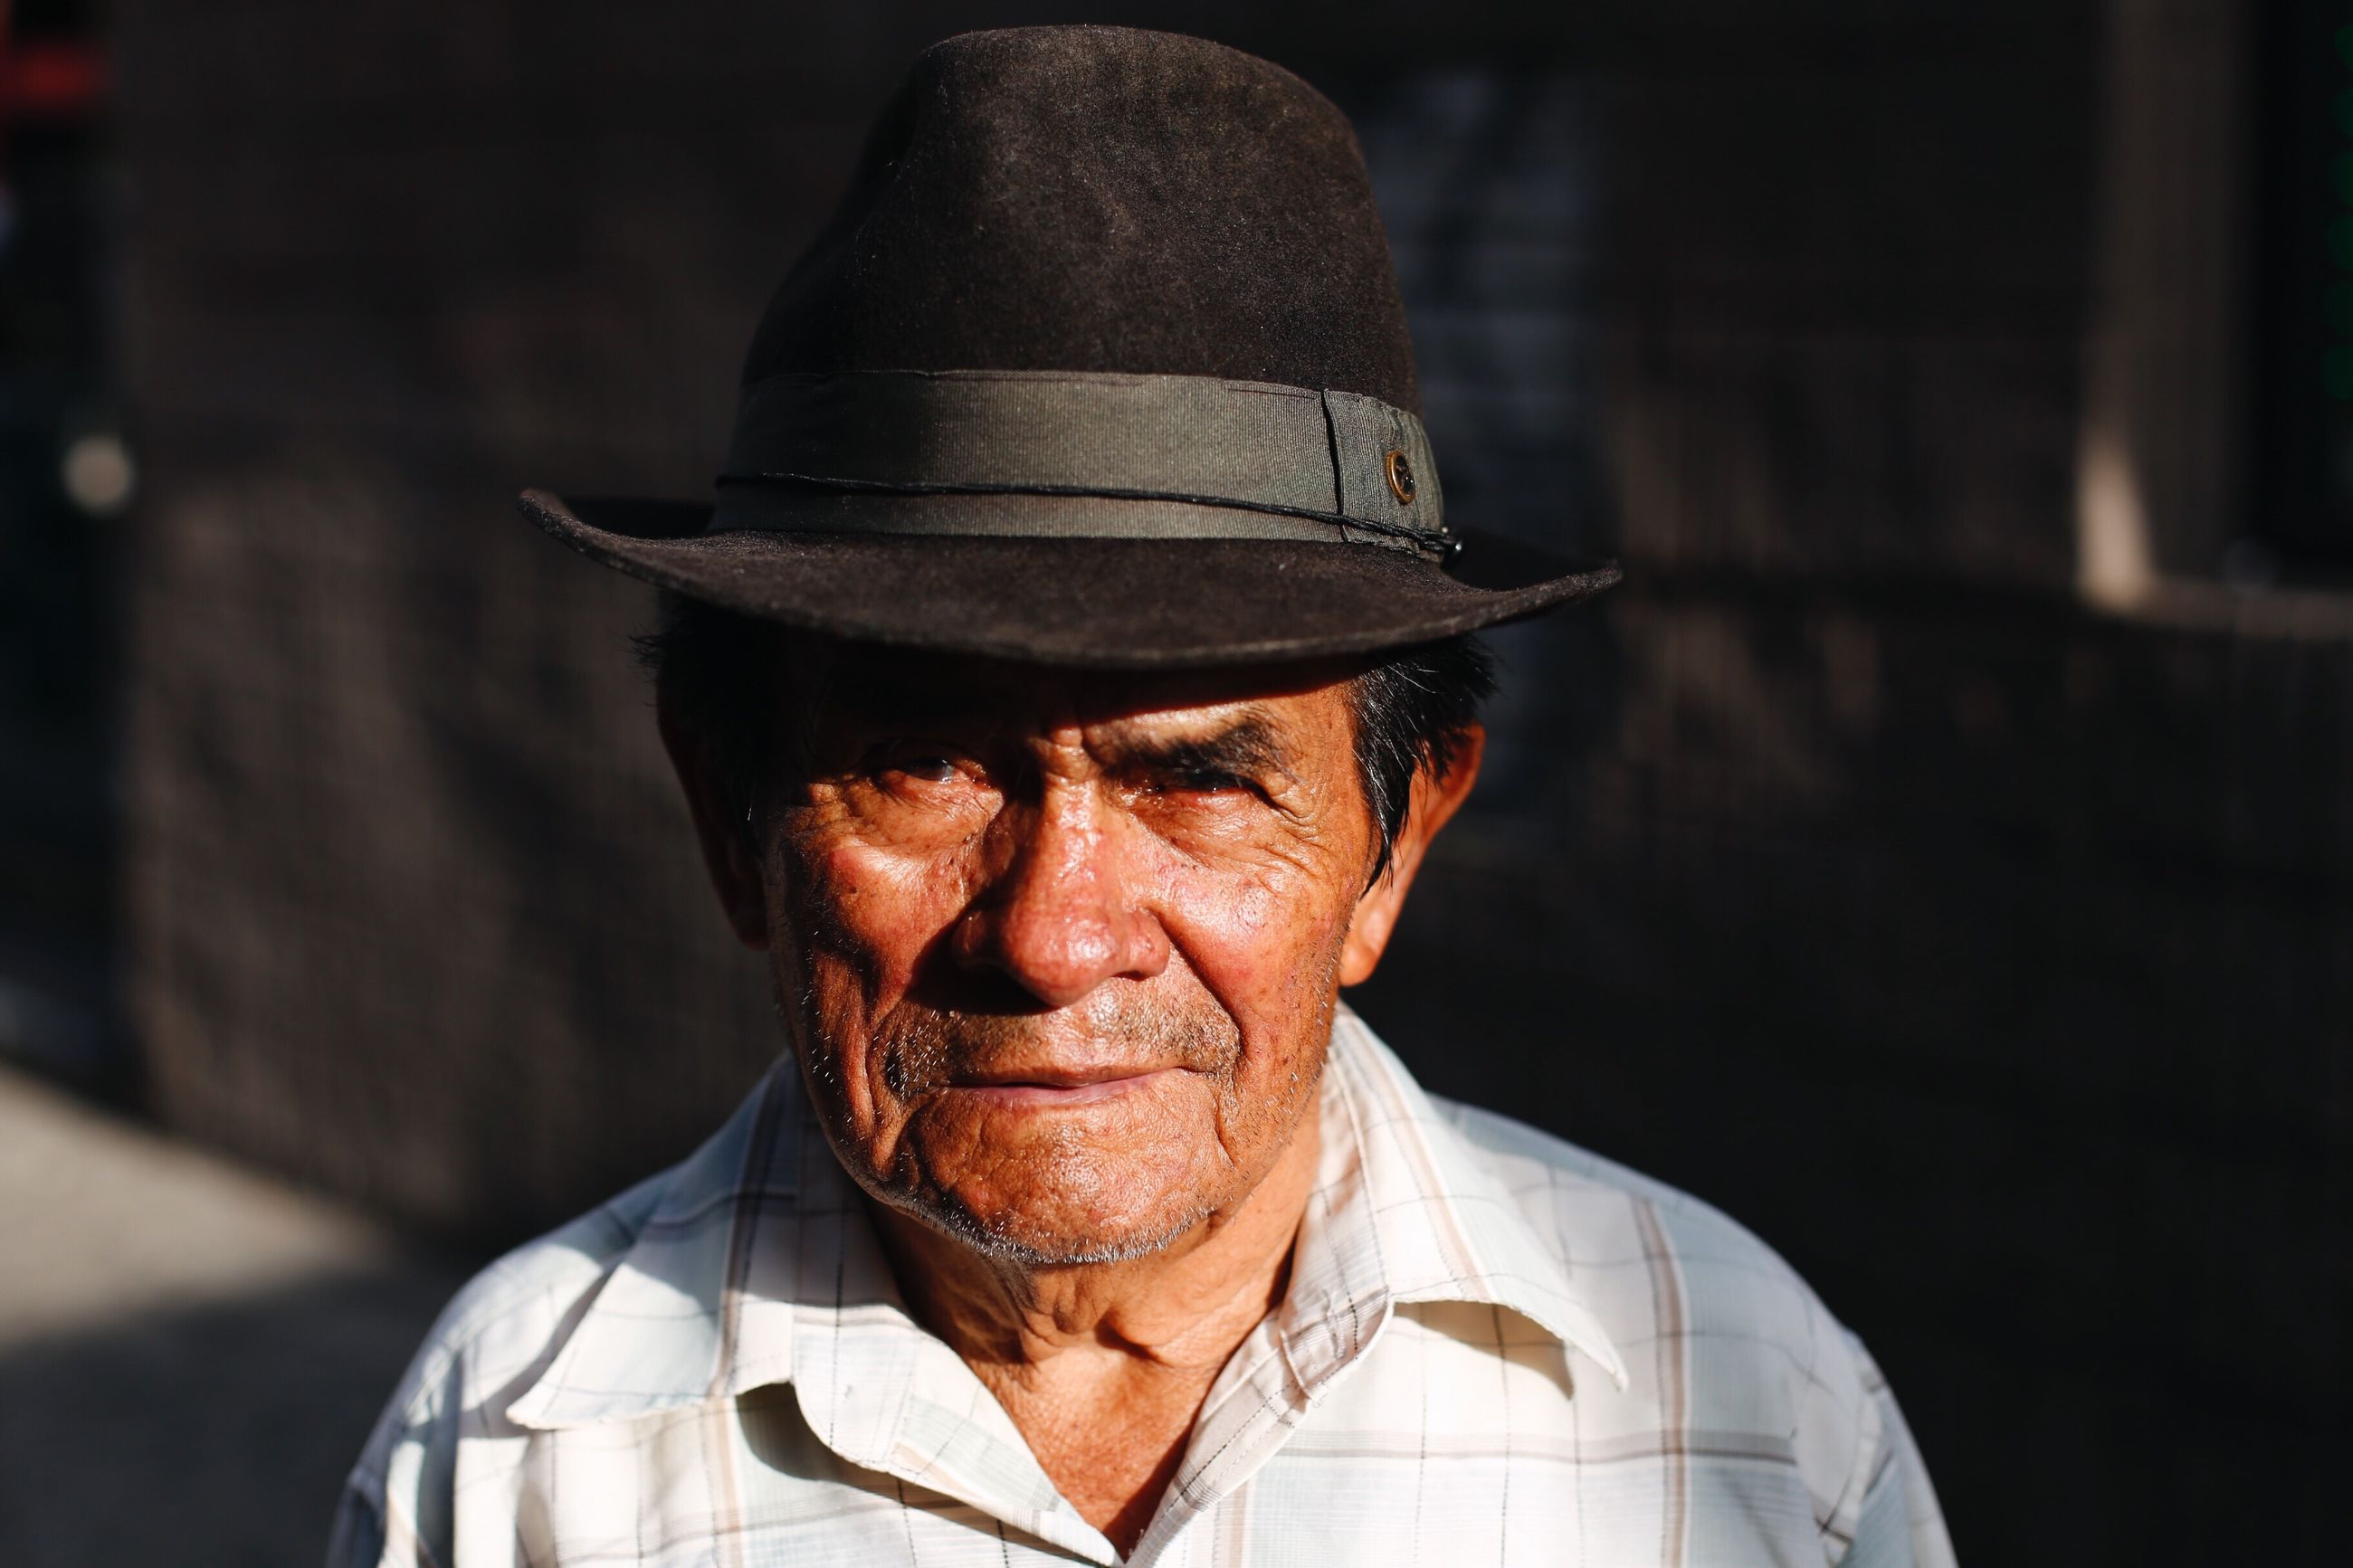 real people, senior adult, one person, senior men, focus on foreground, headshot, lifestyles, cap, portrait, close-up, outdoors, day